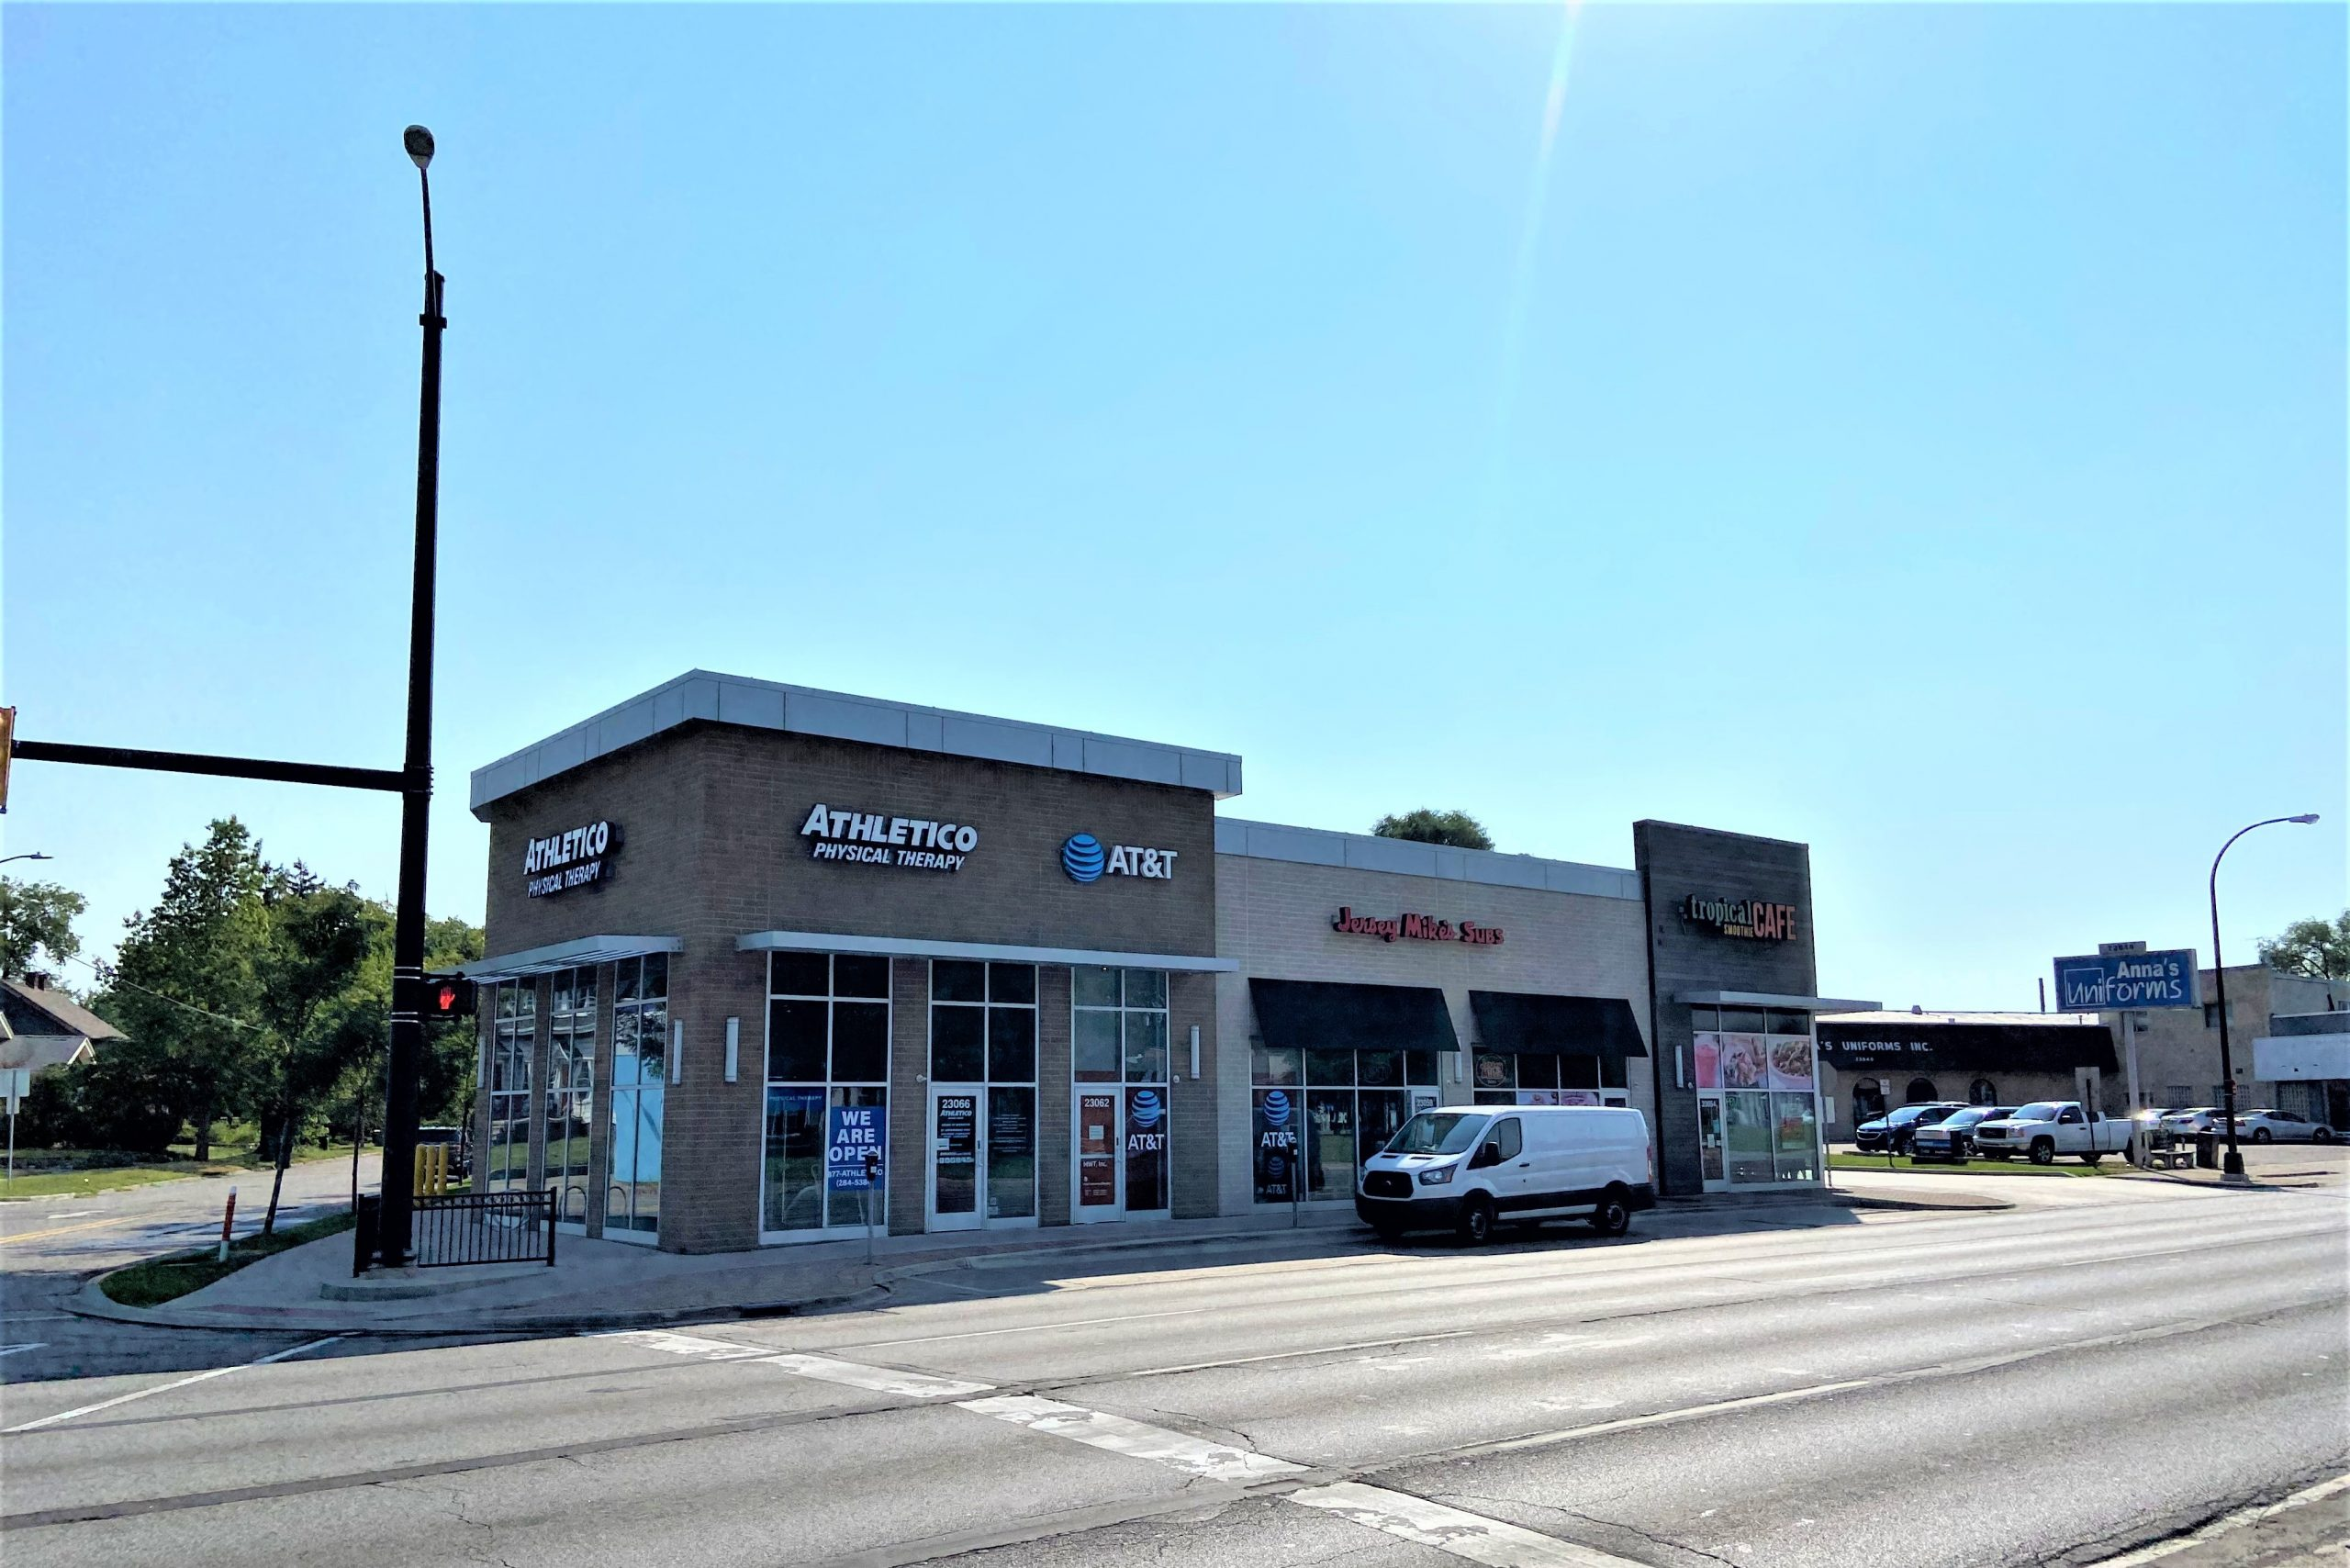 23054 Woodward Ave, Ferndale, Michigan 48220, ,Retail,For Lease,23054 Woodward Ave,1022